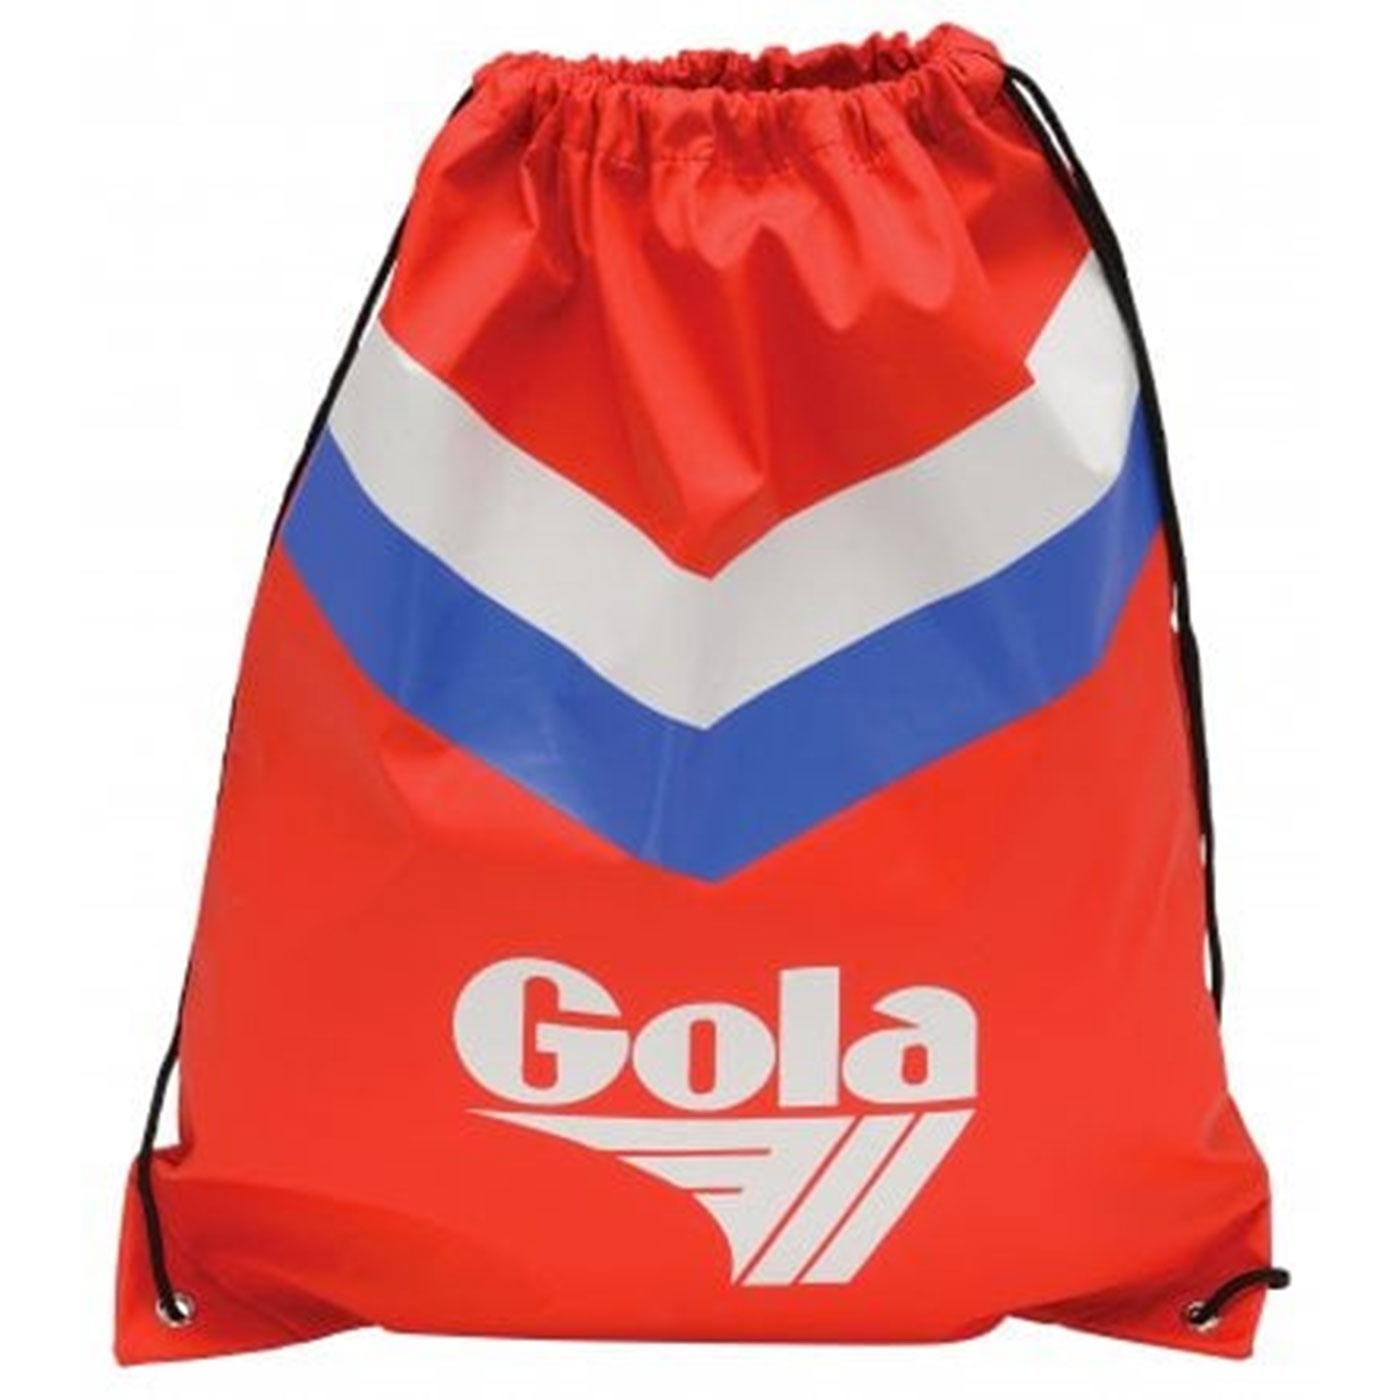 Hicks GOLA Chevron Retro 1970s Duffle Bag (Red)